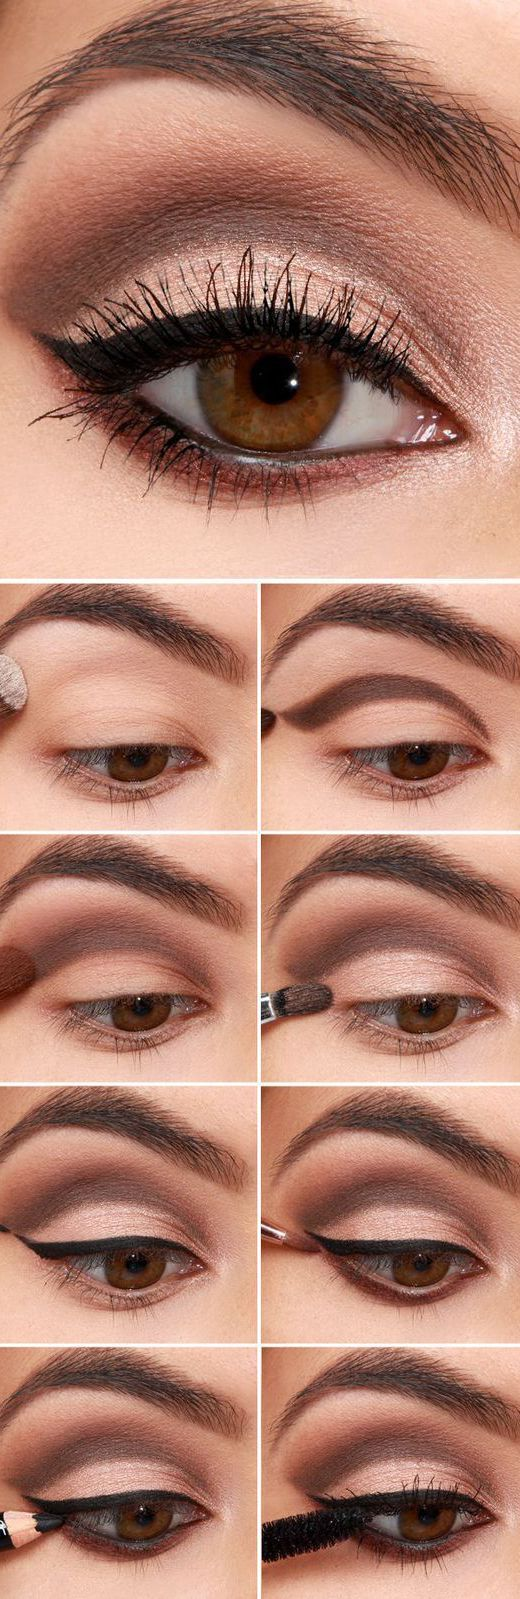 25 trending easy eyeshadow ideas on pinterest easy eyeshadow 16 easy step by step eyeshadow tutorials for beginners 3 easy ccuart Images